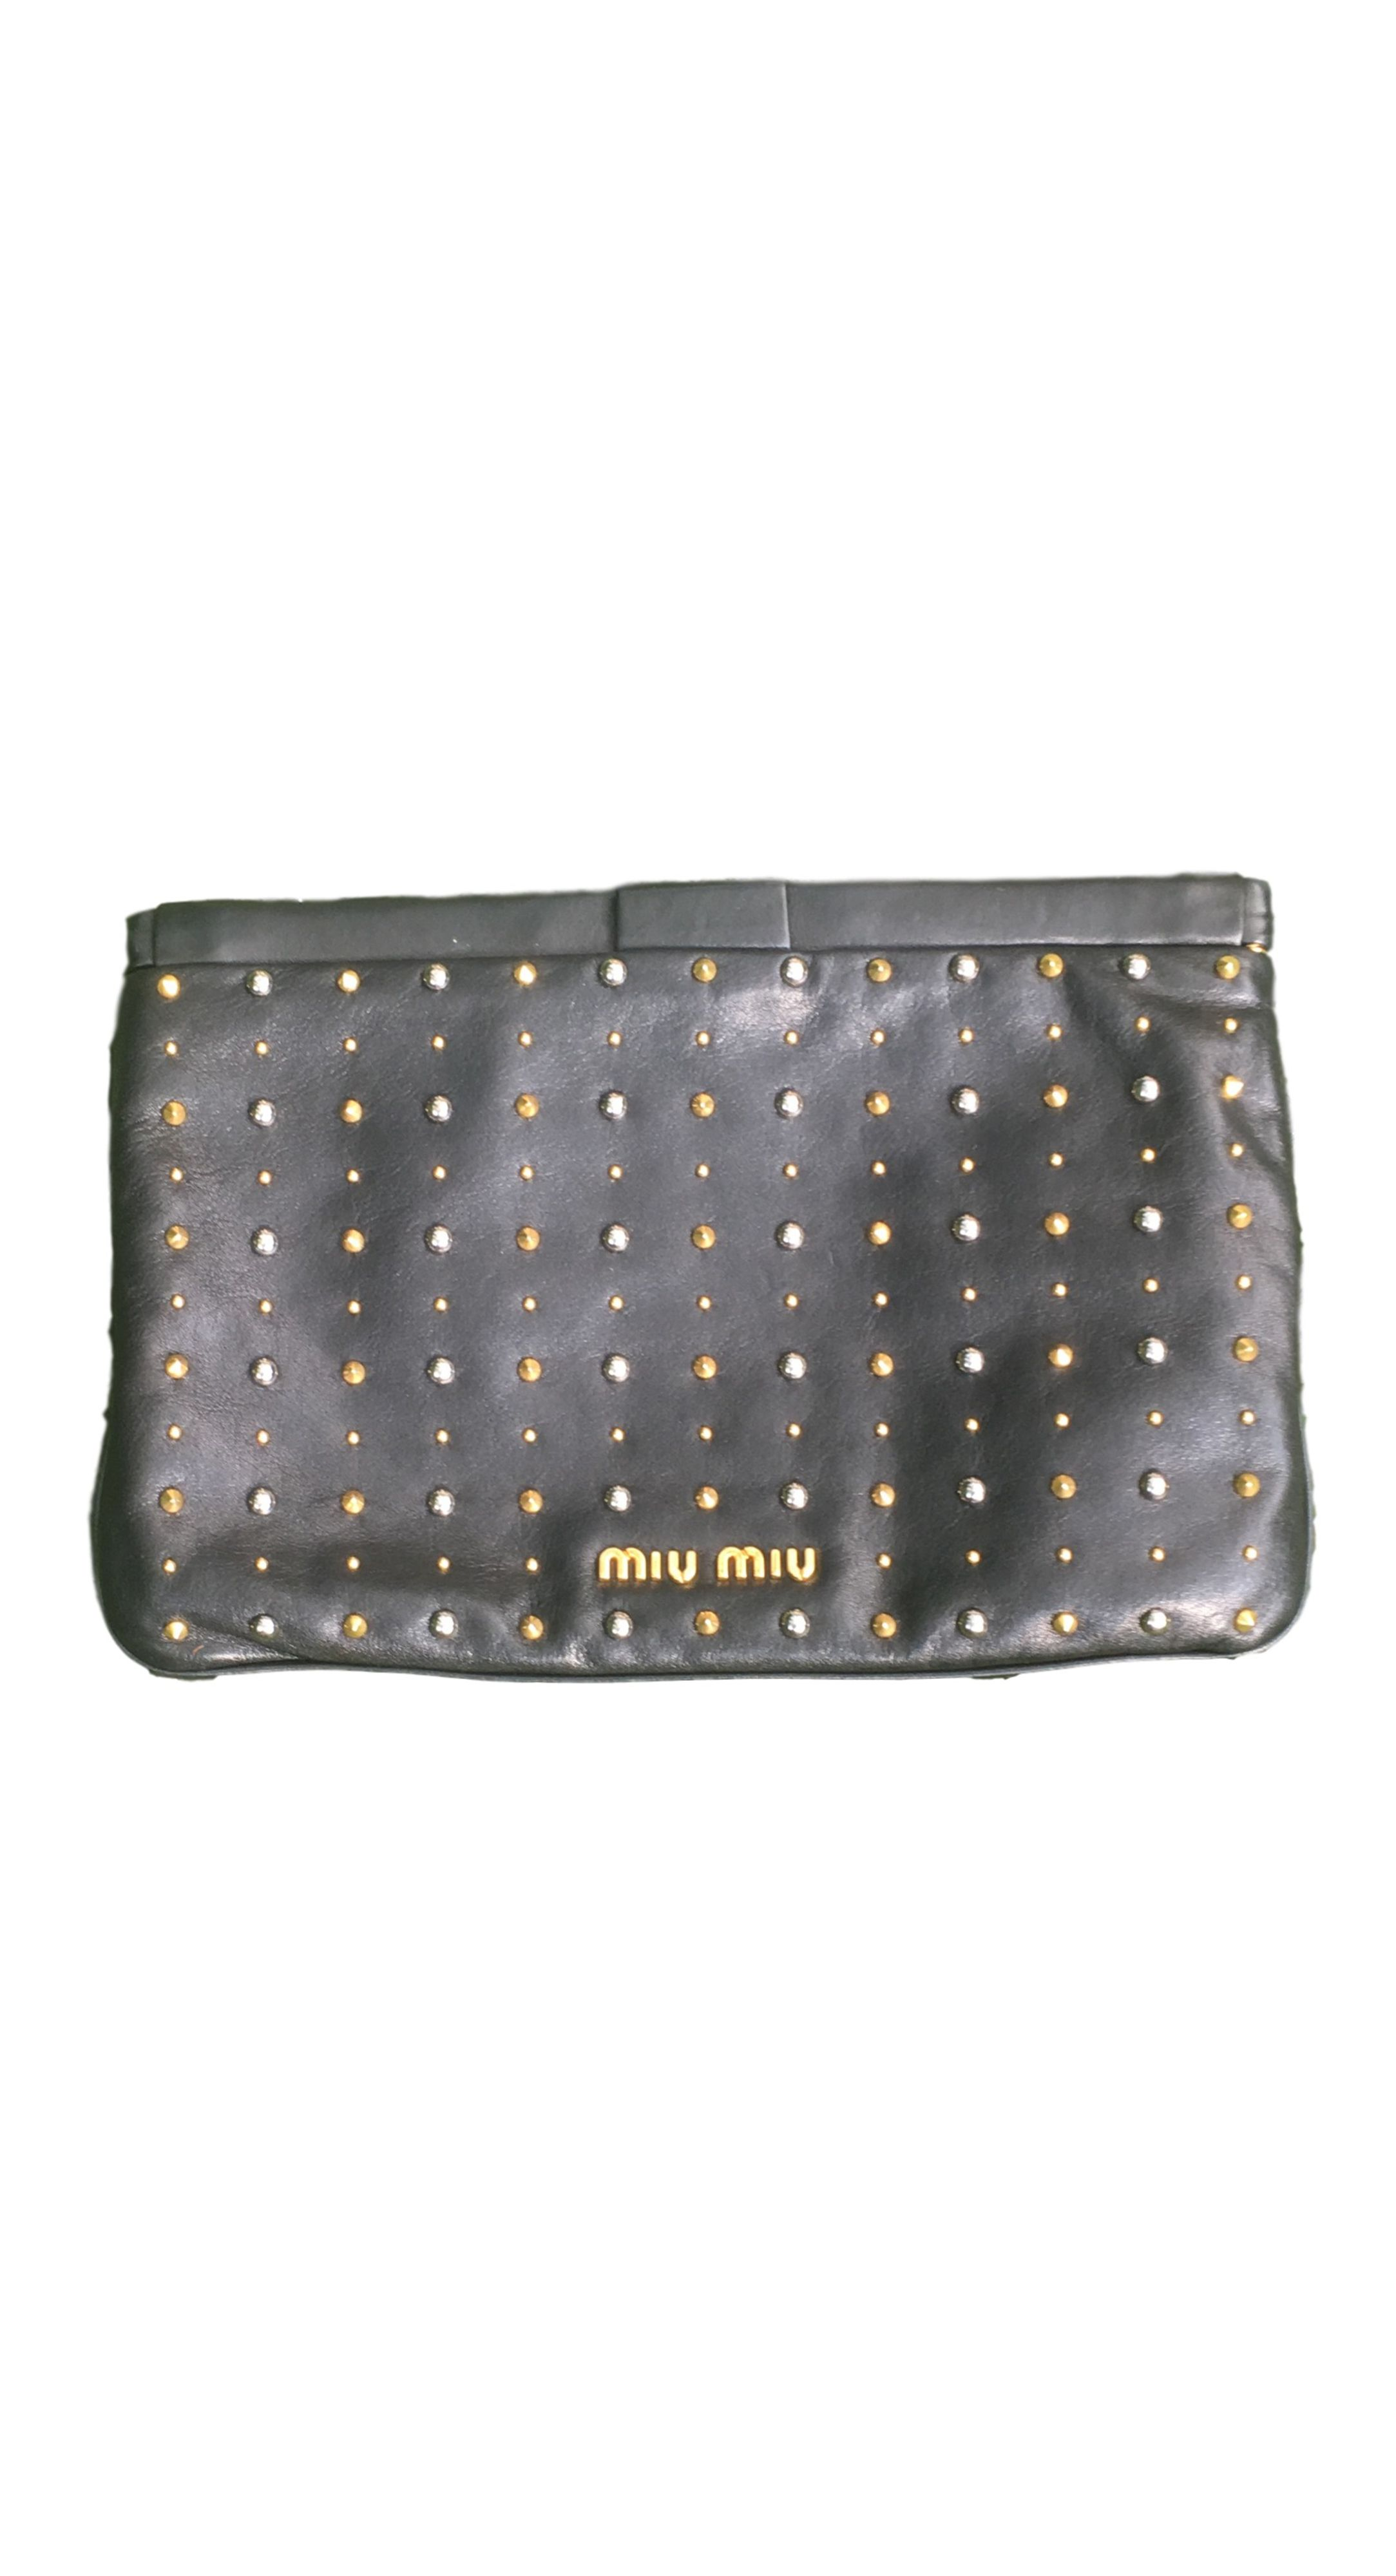 be59d0912548 Our Closet Miu Miu Metallic studded black flat clutch. The perfect little  clutch to add a modern touch to LBD.